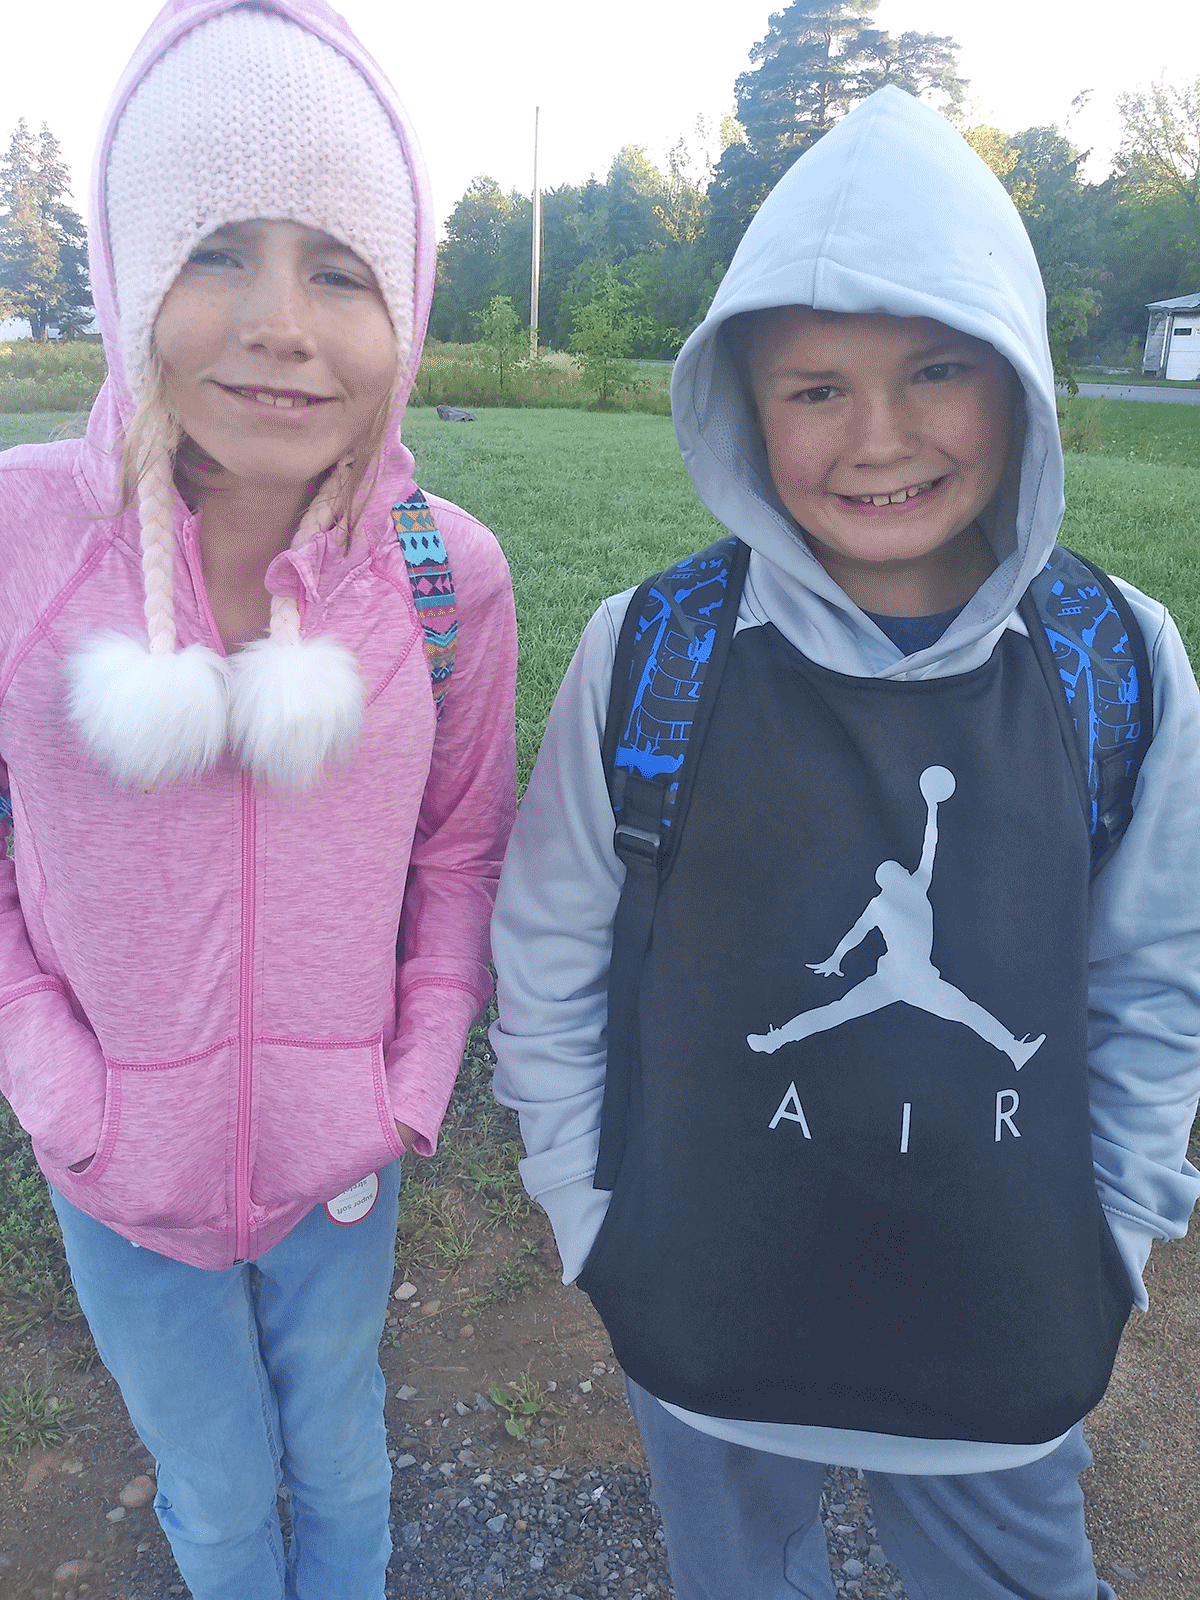 Larissa Snyder started sixth grade and Michael Snyder Jr. began fifth grader, which is his first year in middle school. They both attend Brasher Falls Central. Photo submitted by Samantha Sirles.